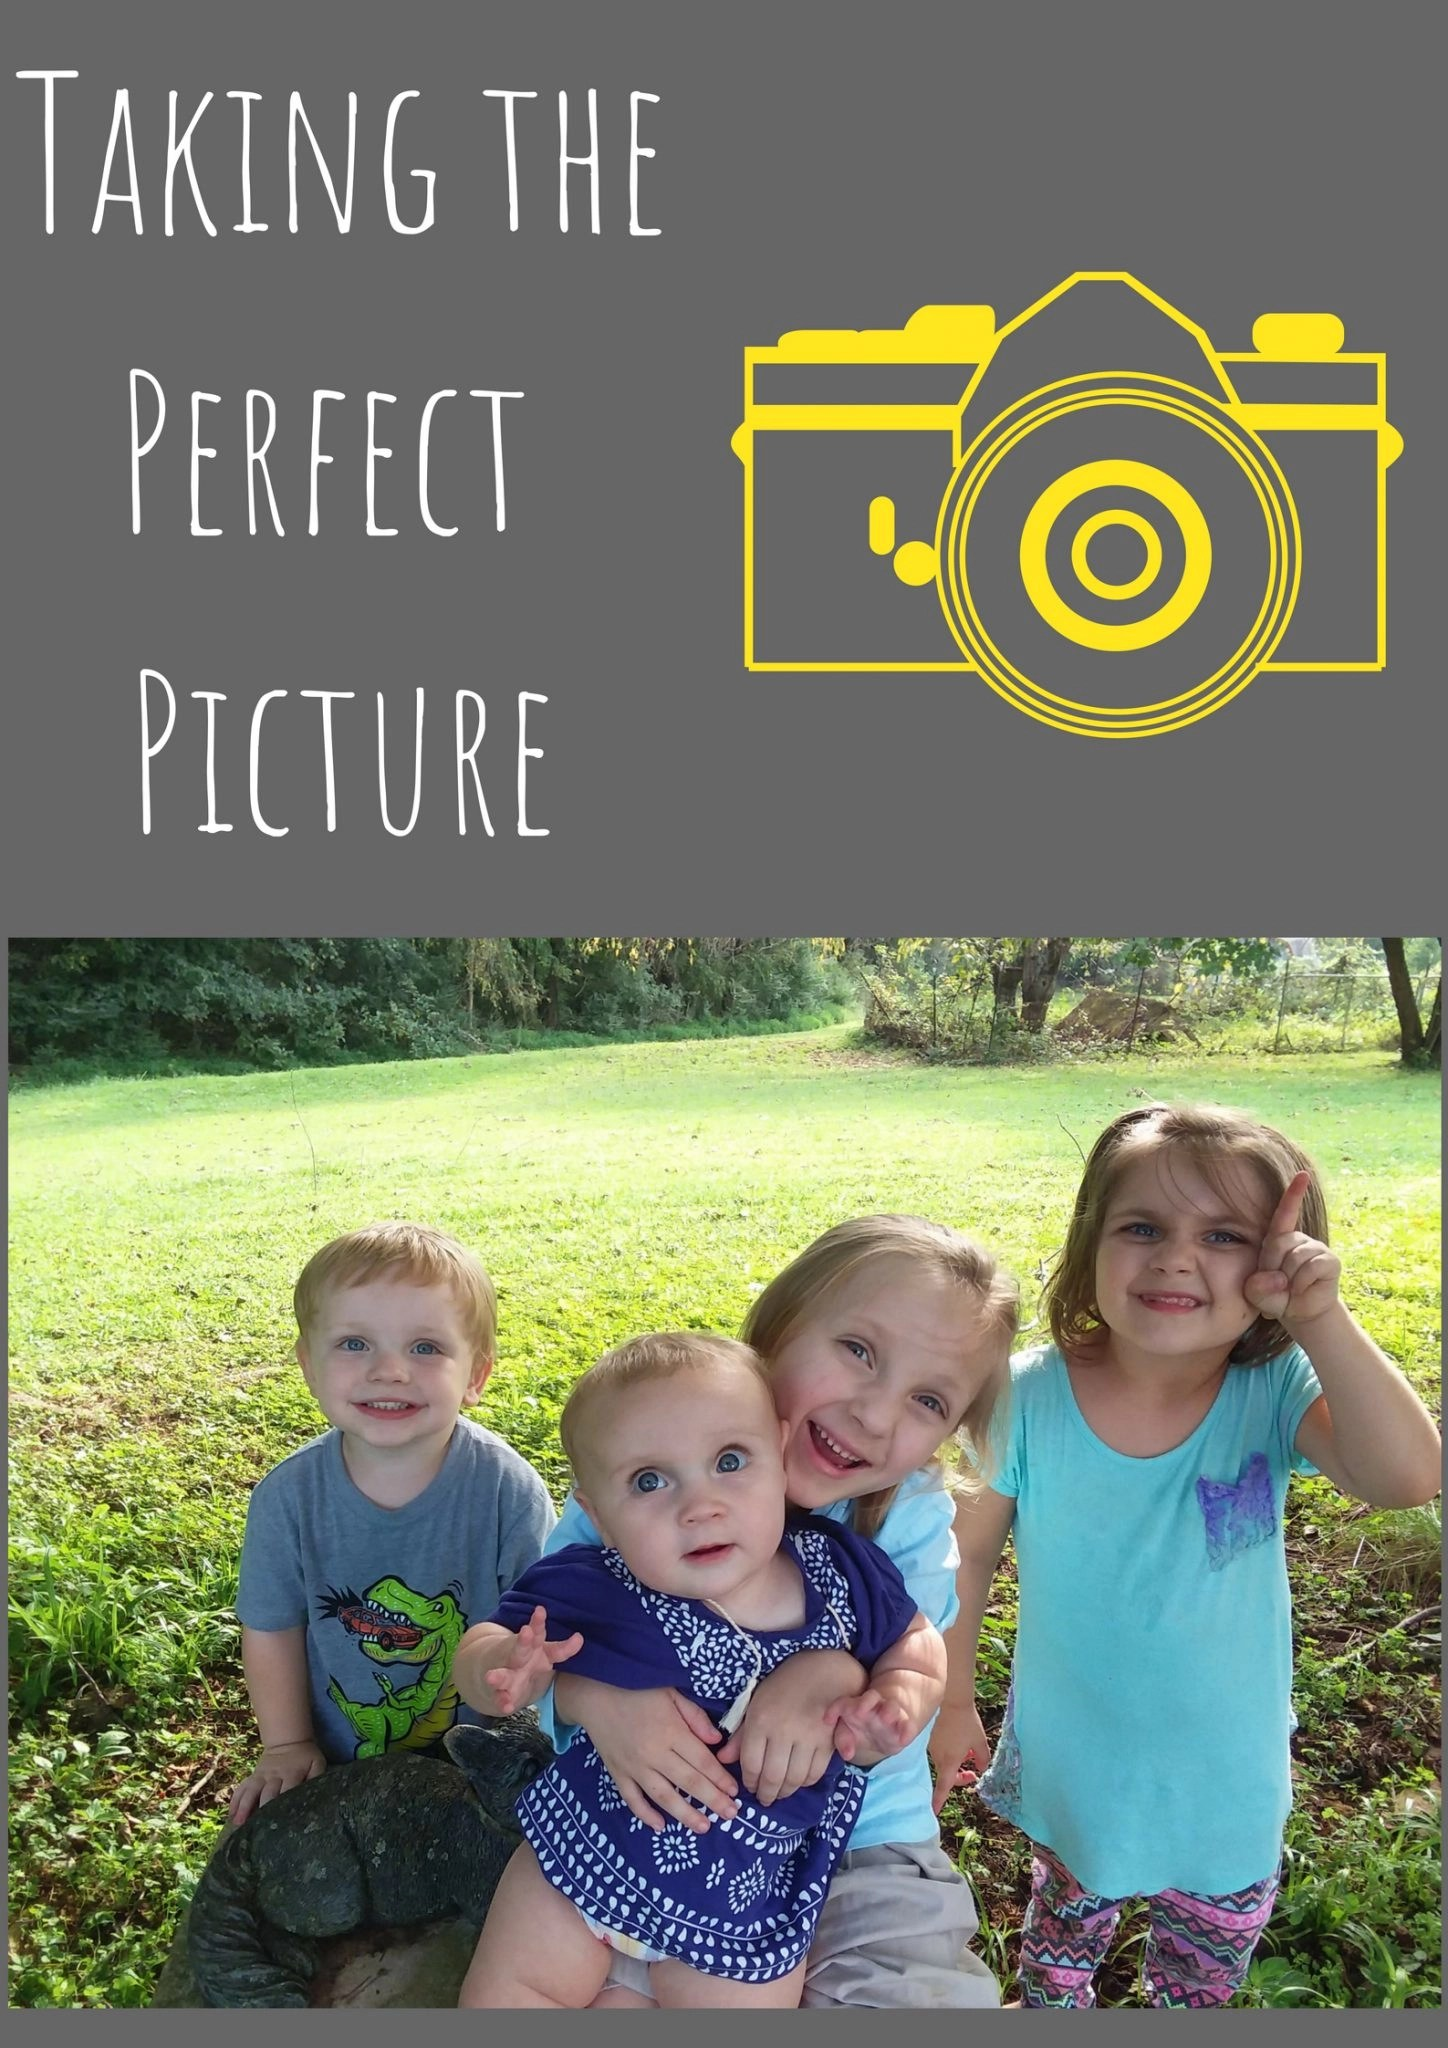 Taking the Perfect Picture